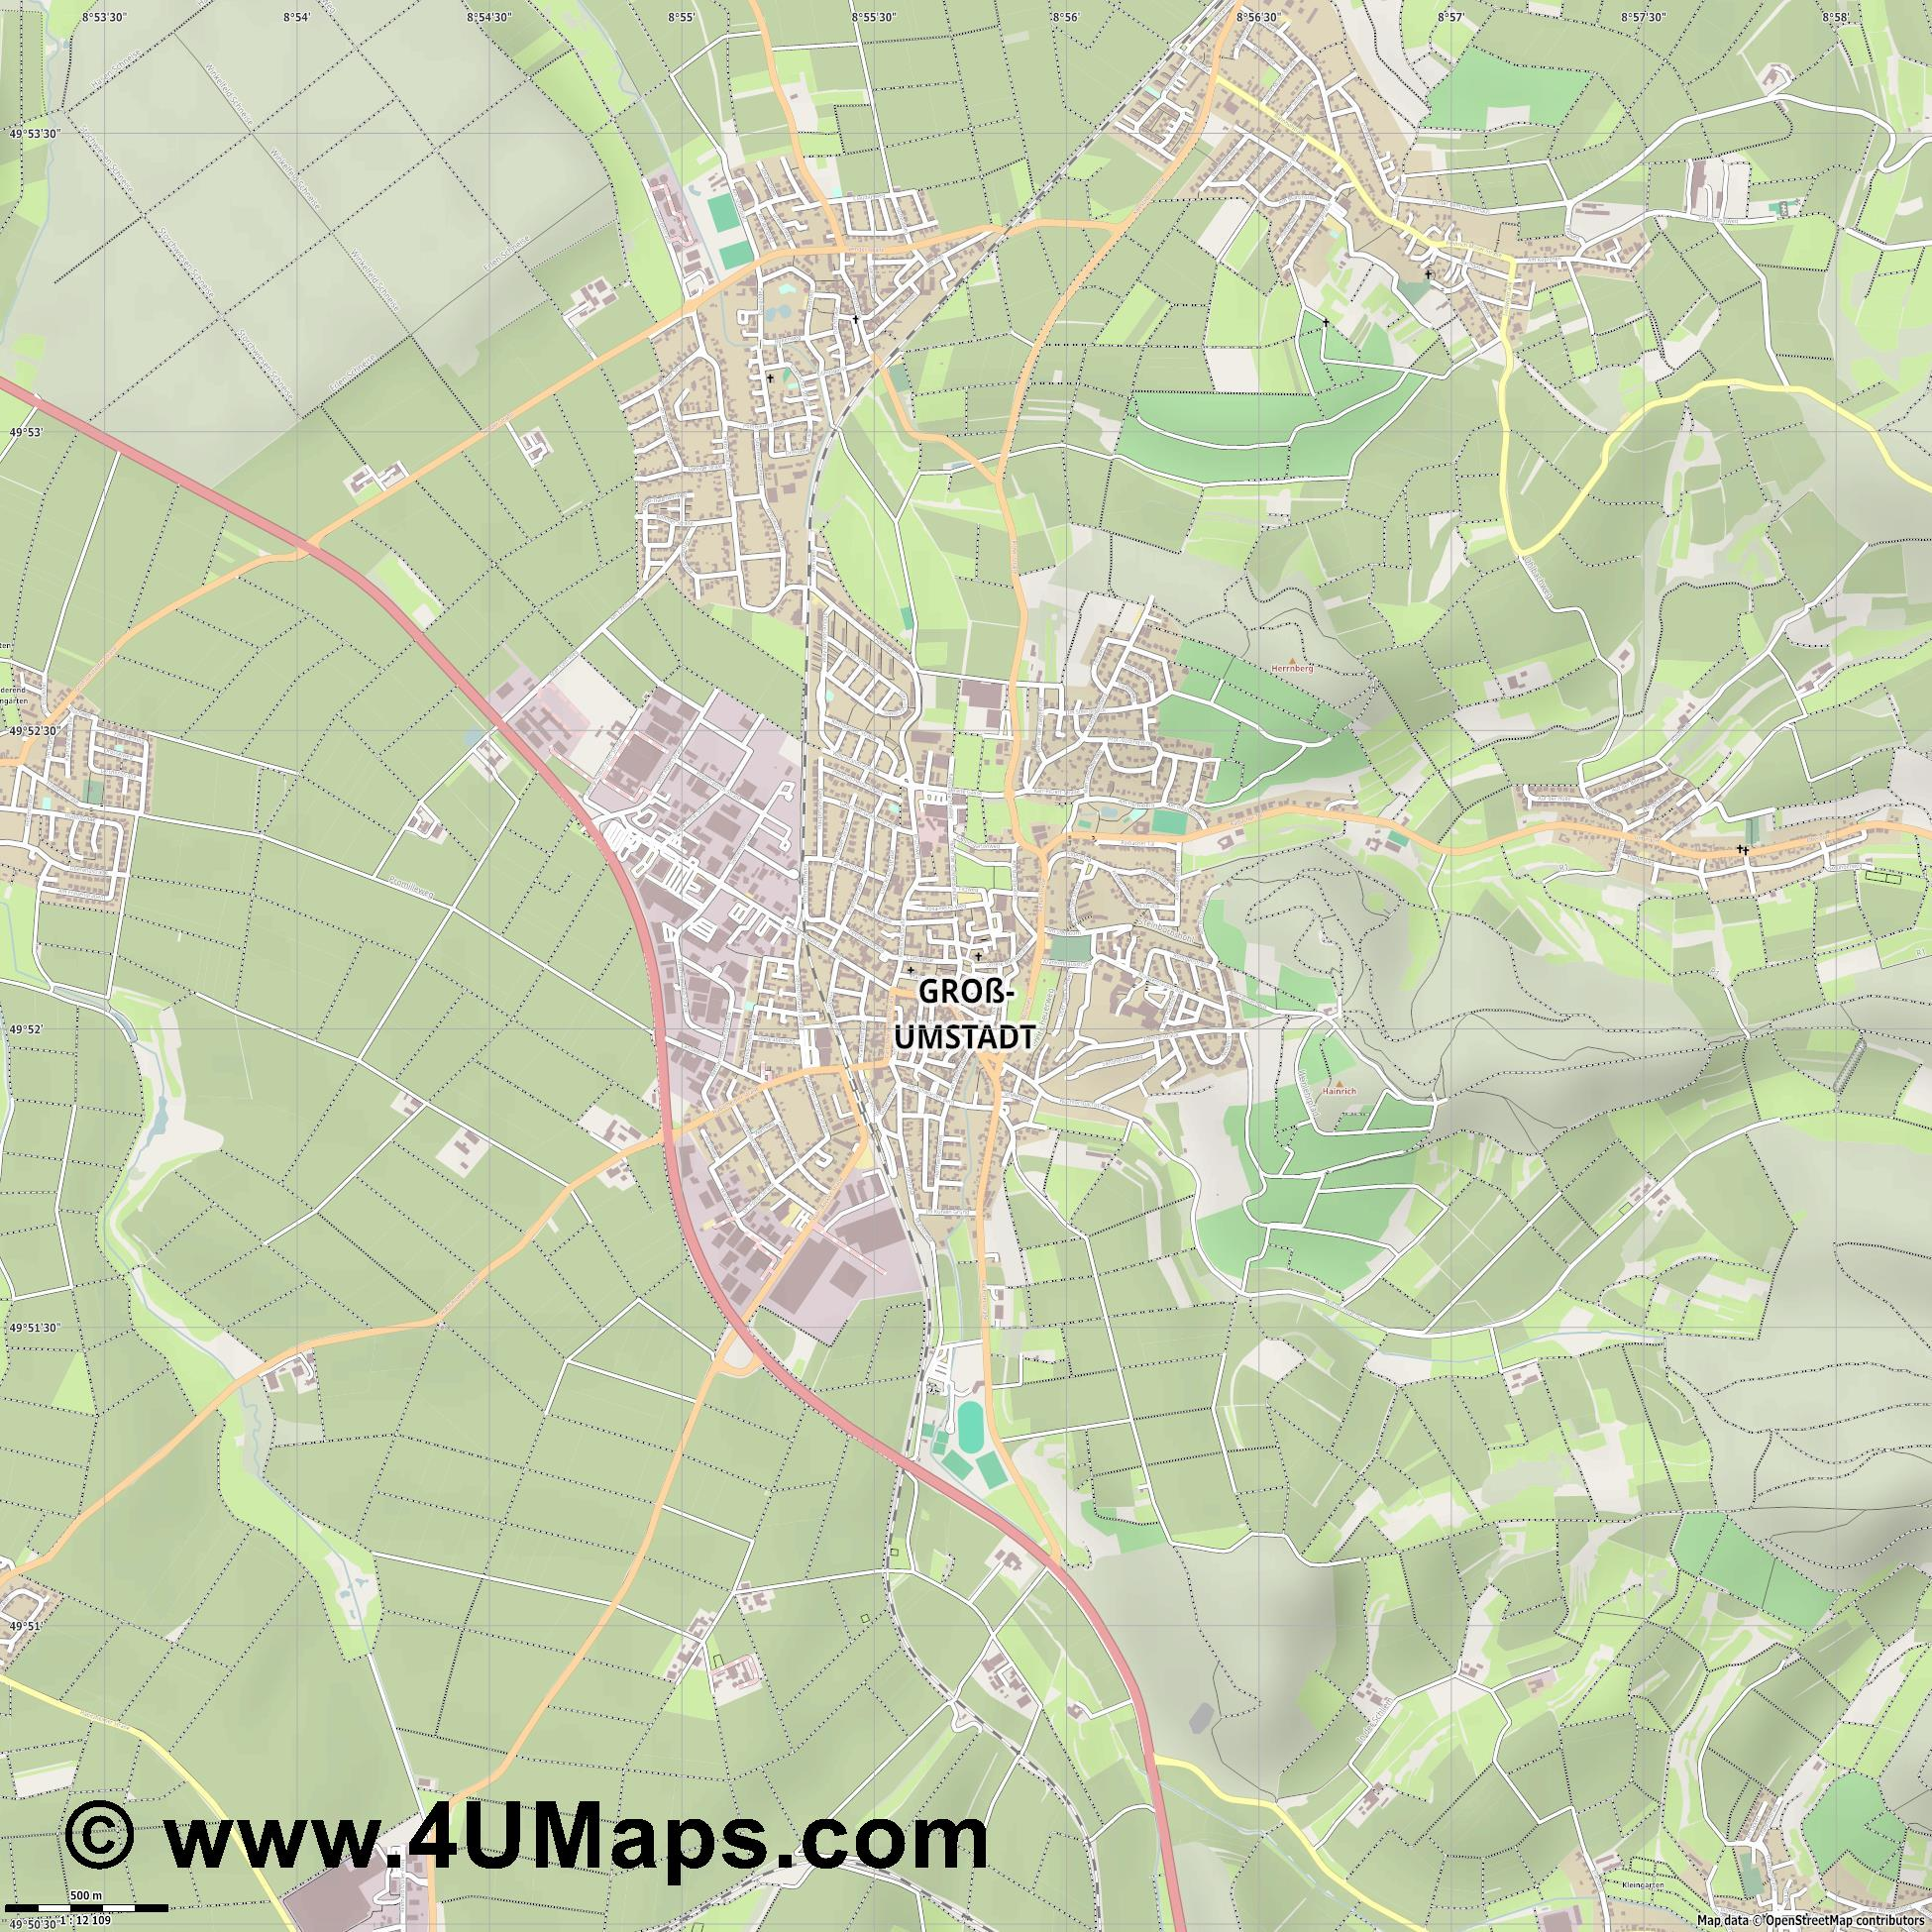 Groß Umstadt  jpg ultra high detail preview vector city map